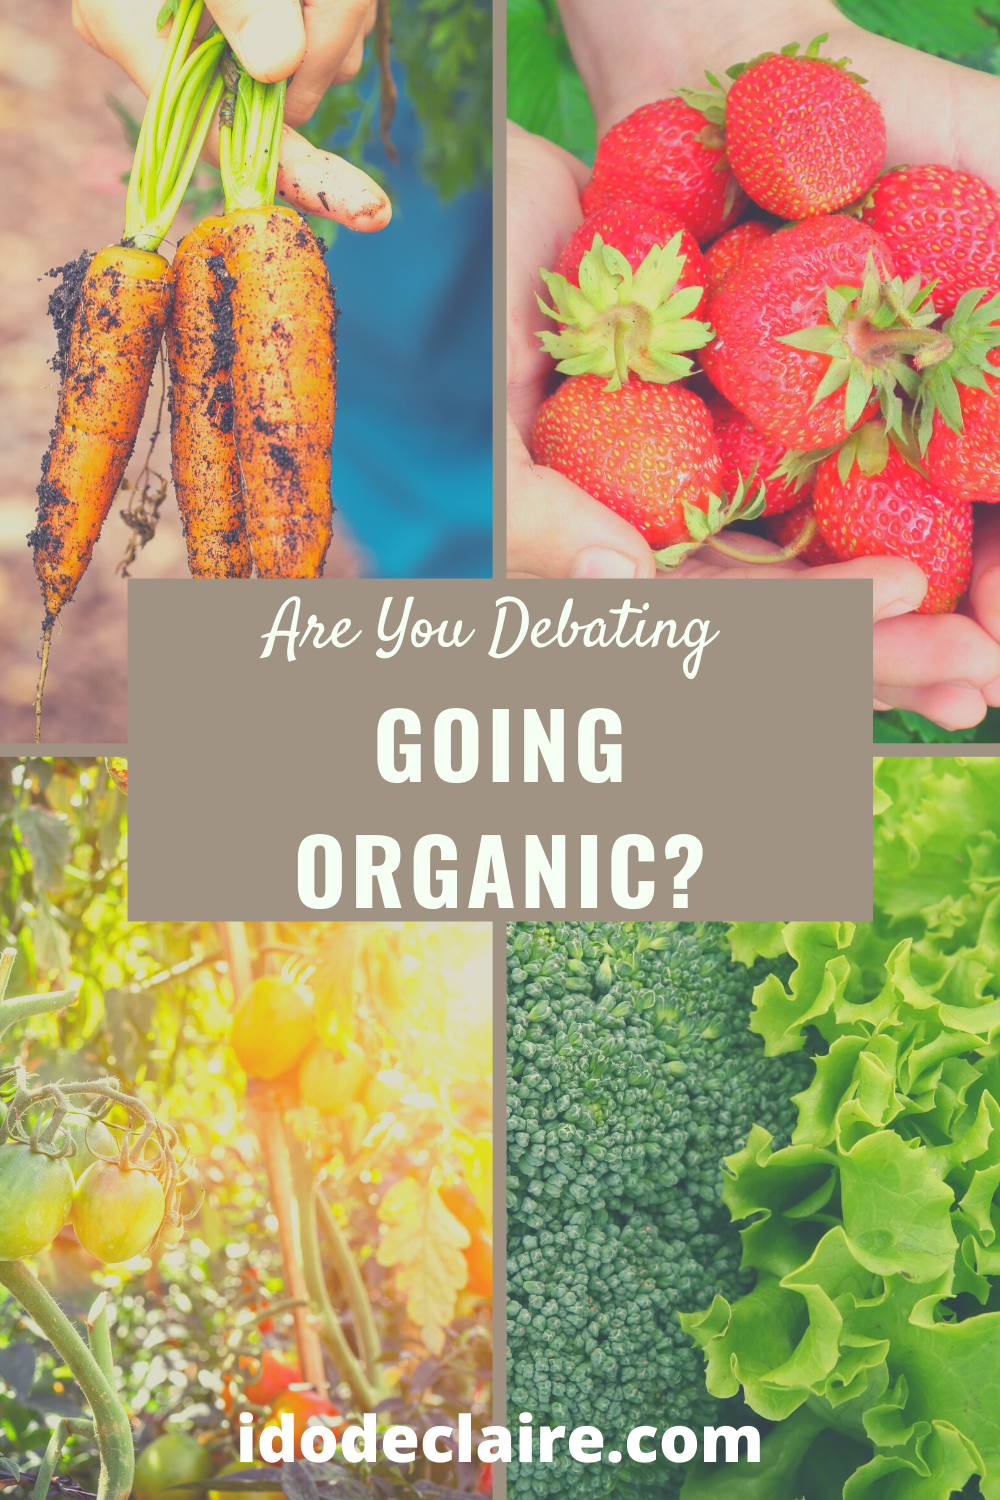 Are You Debating Going Organic?